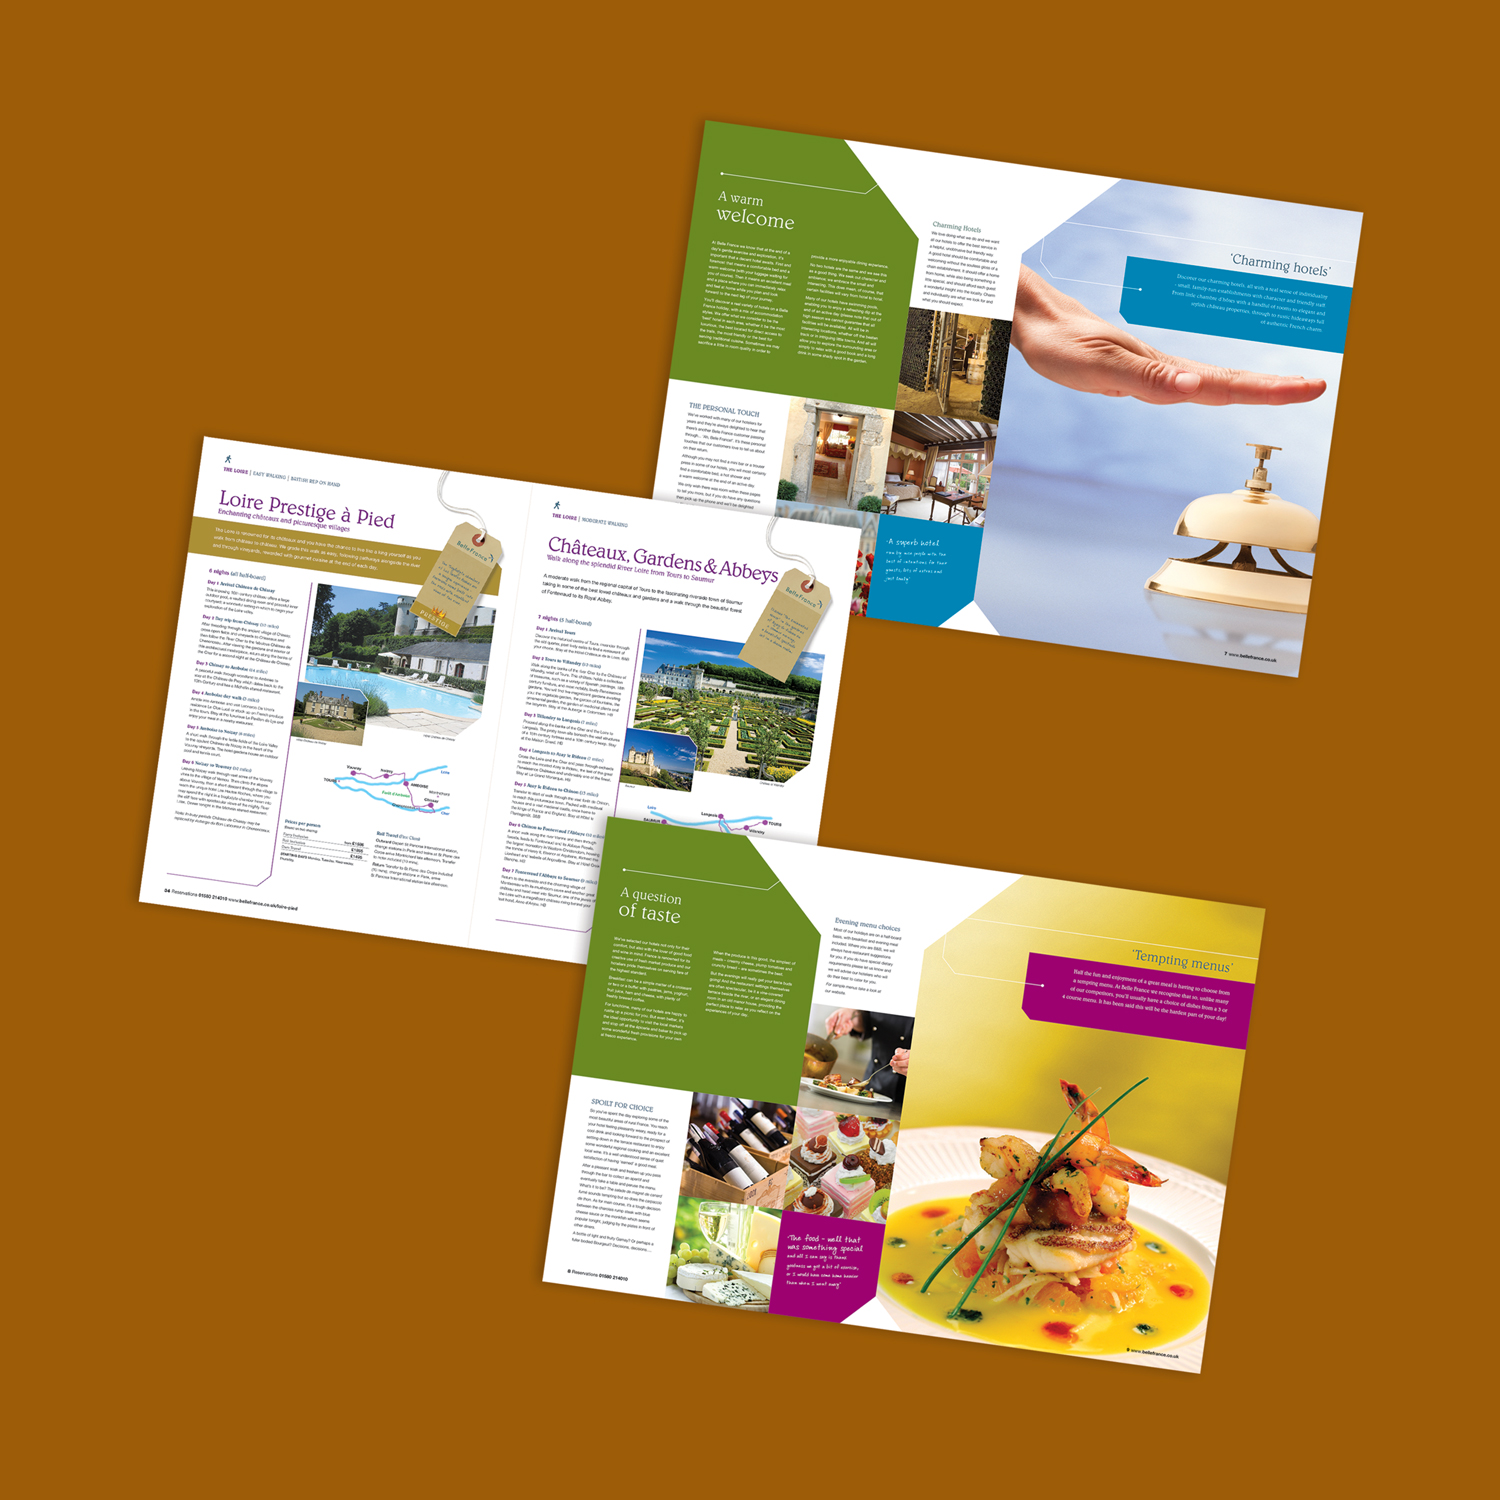 russet-Page-5.jpg